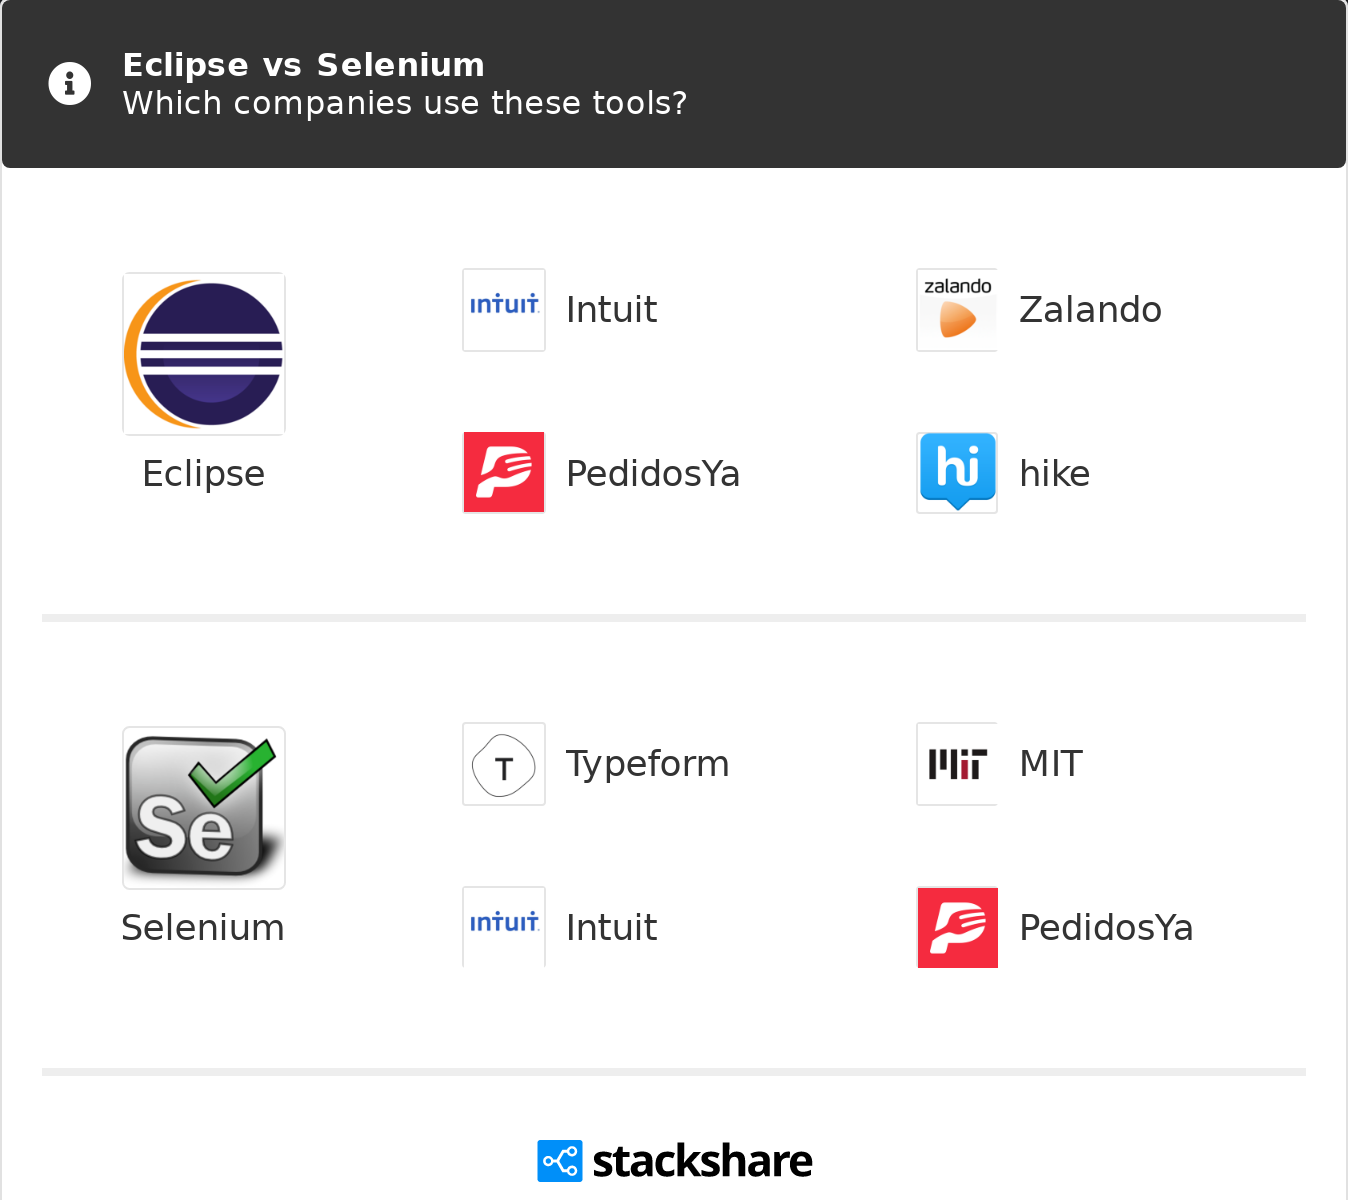 Eclipse vs Selenium | What are the differences?